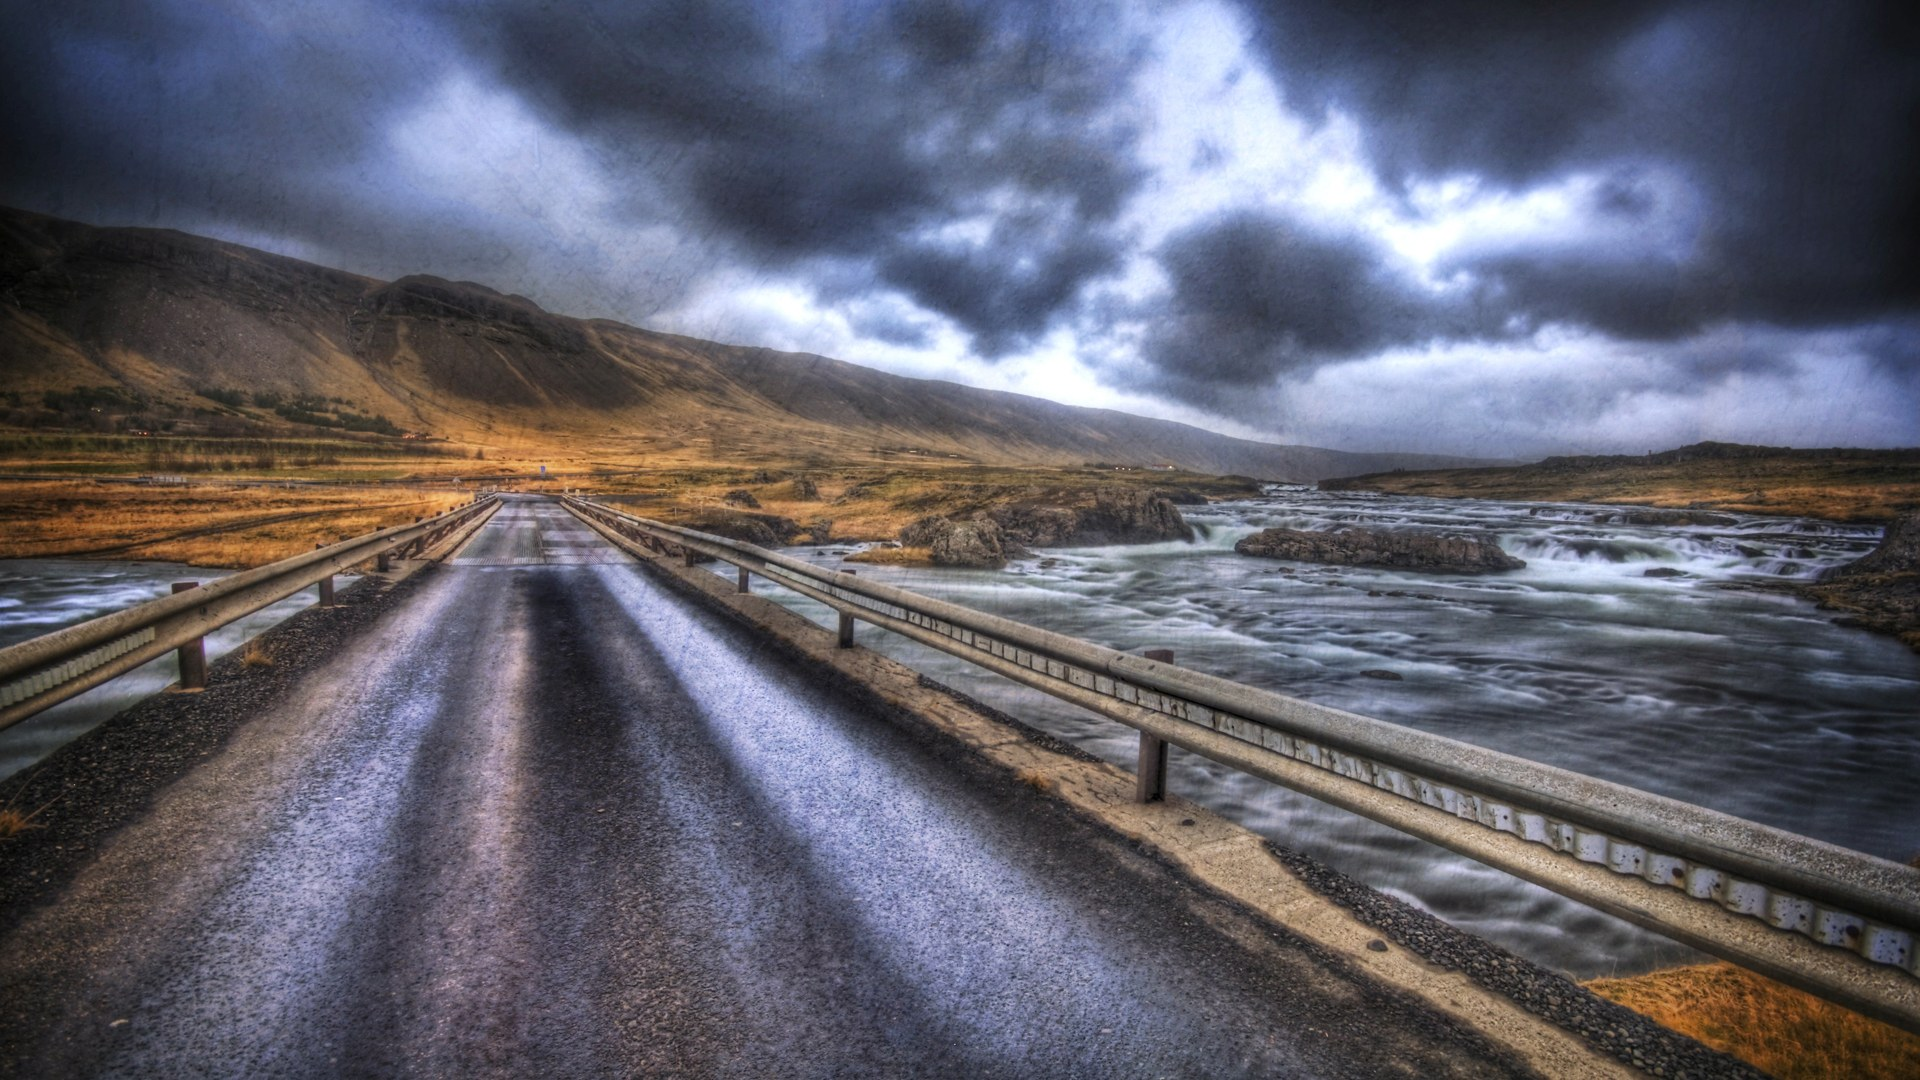 Iceland S Ring Road Wallpapers: Free Wallpaper Of Iceland